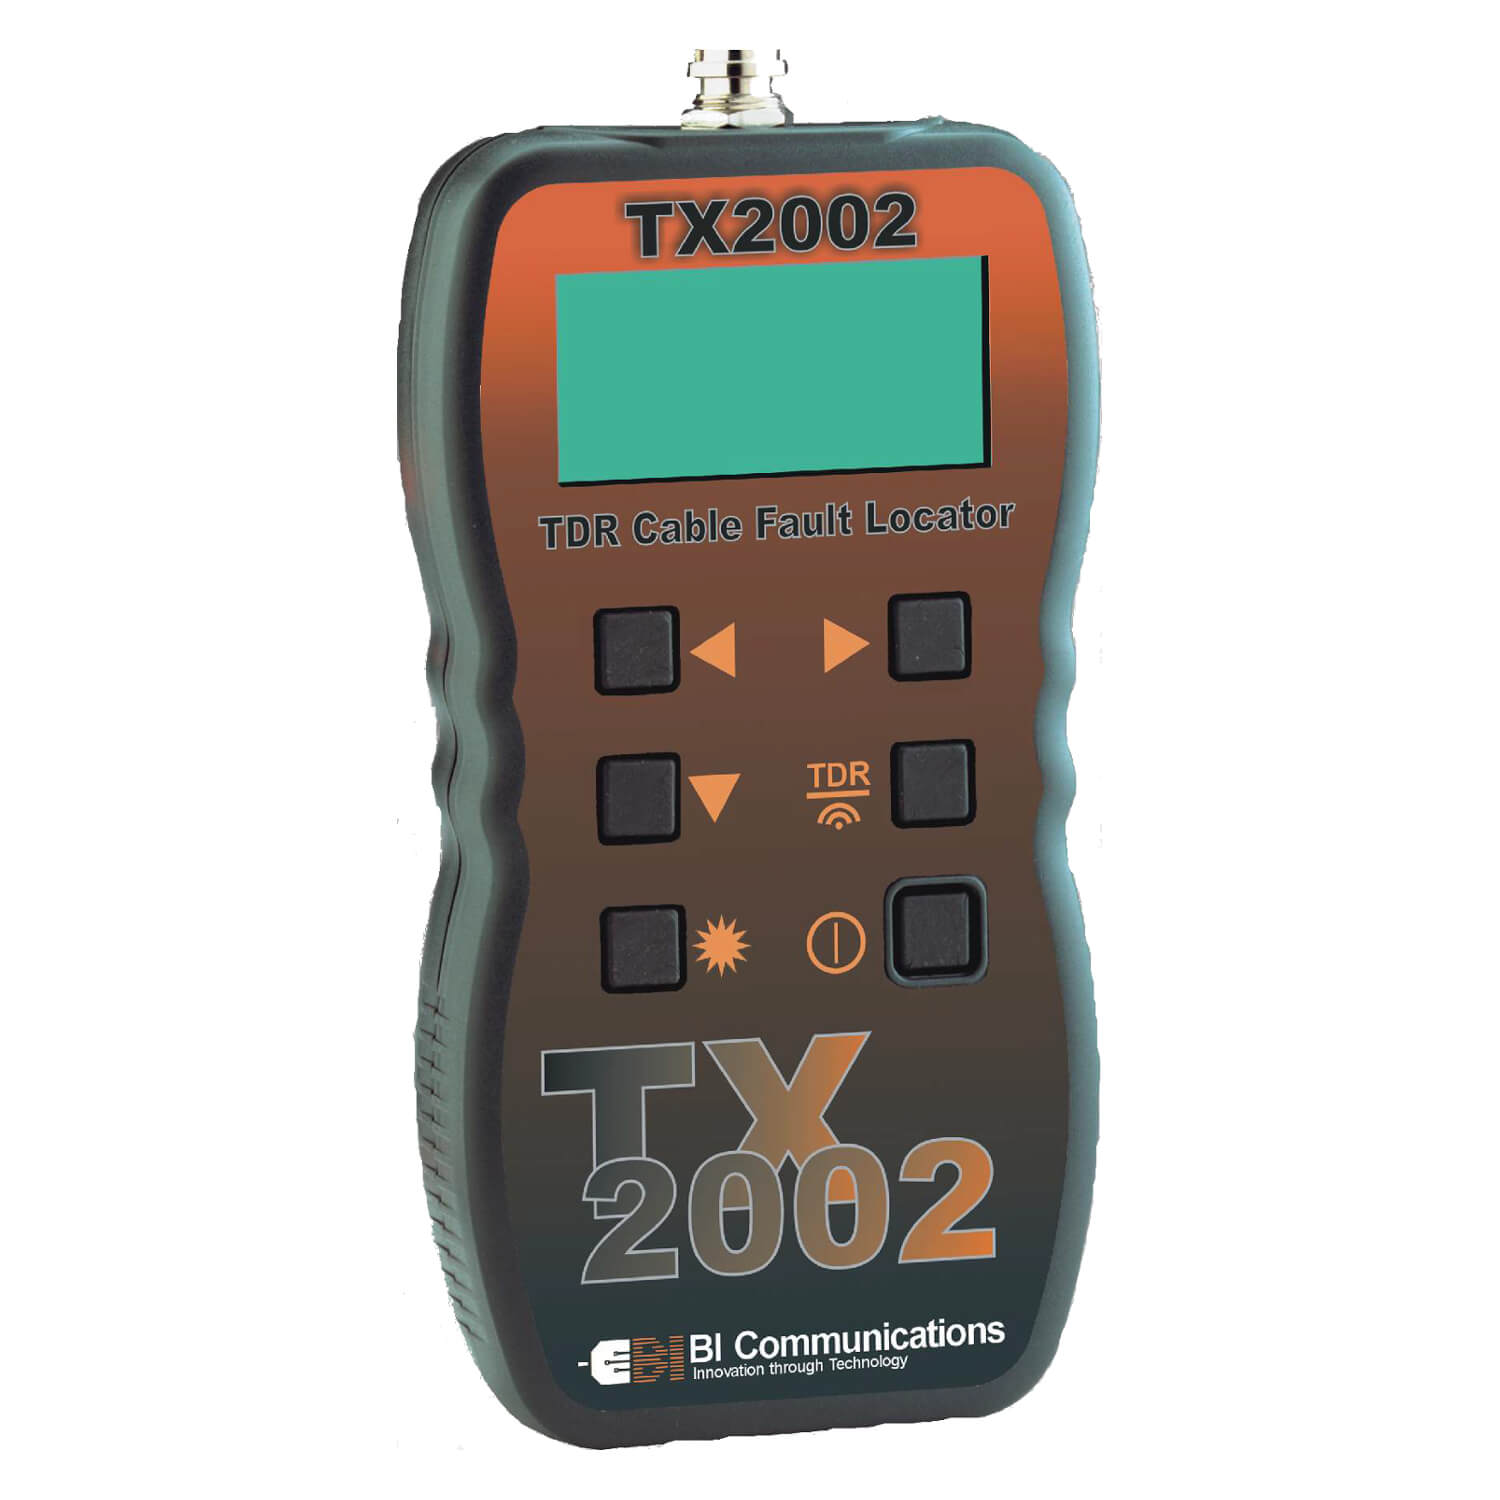 Tempo Tv90 Cablescout Tdr Cable Fault Locator